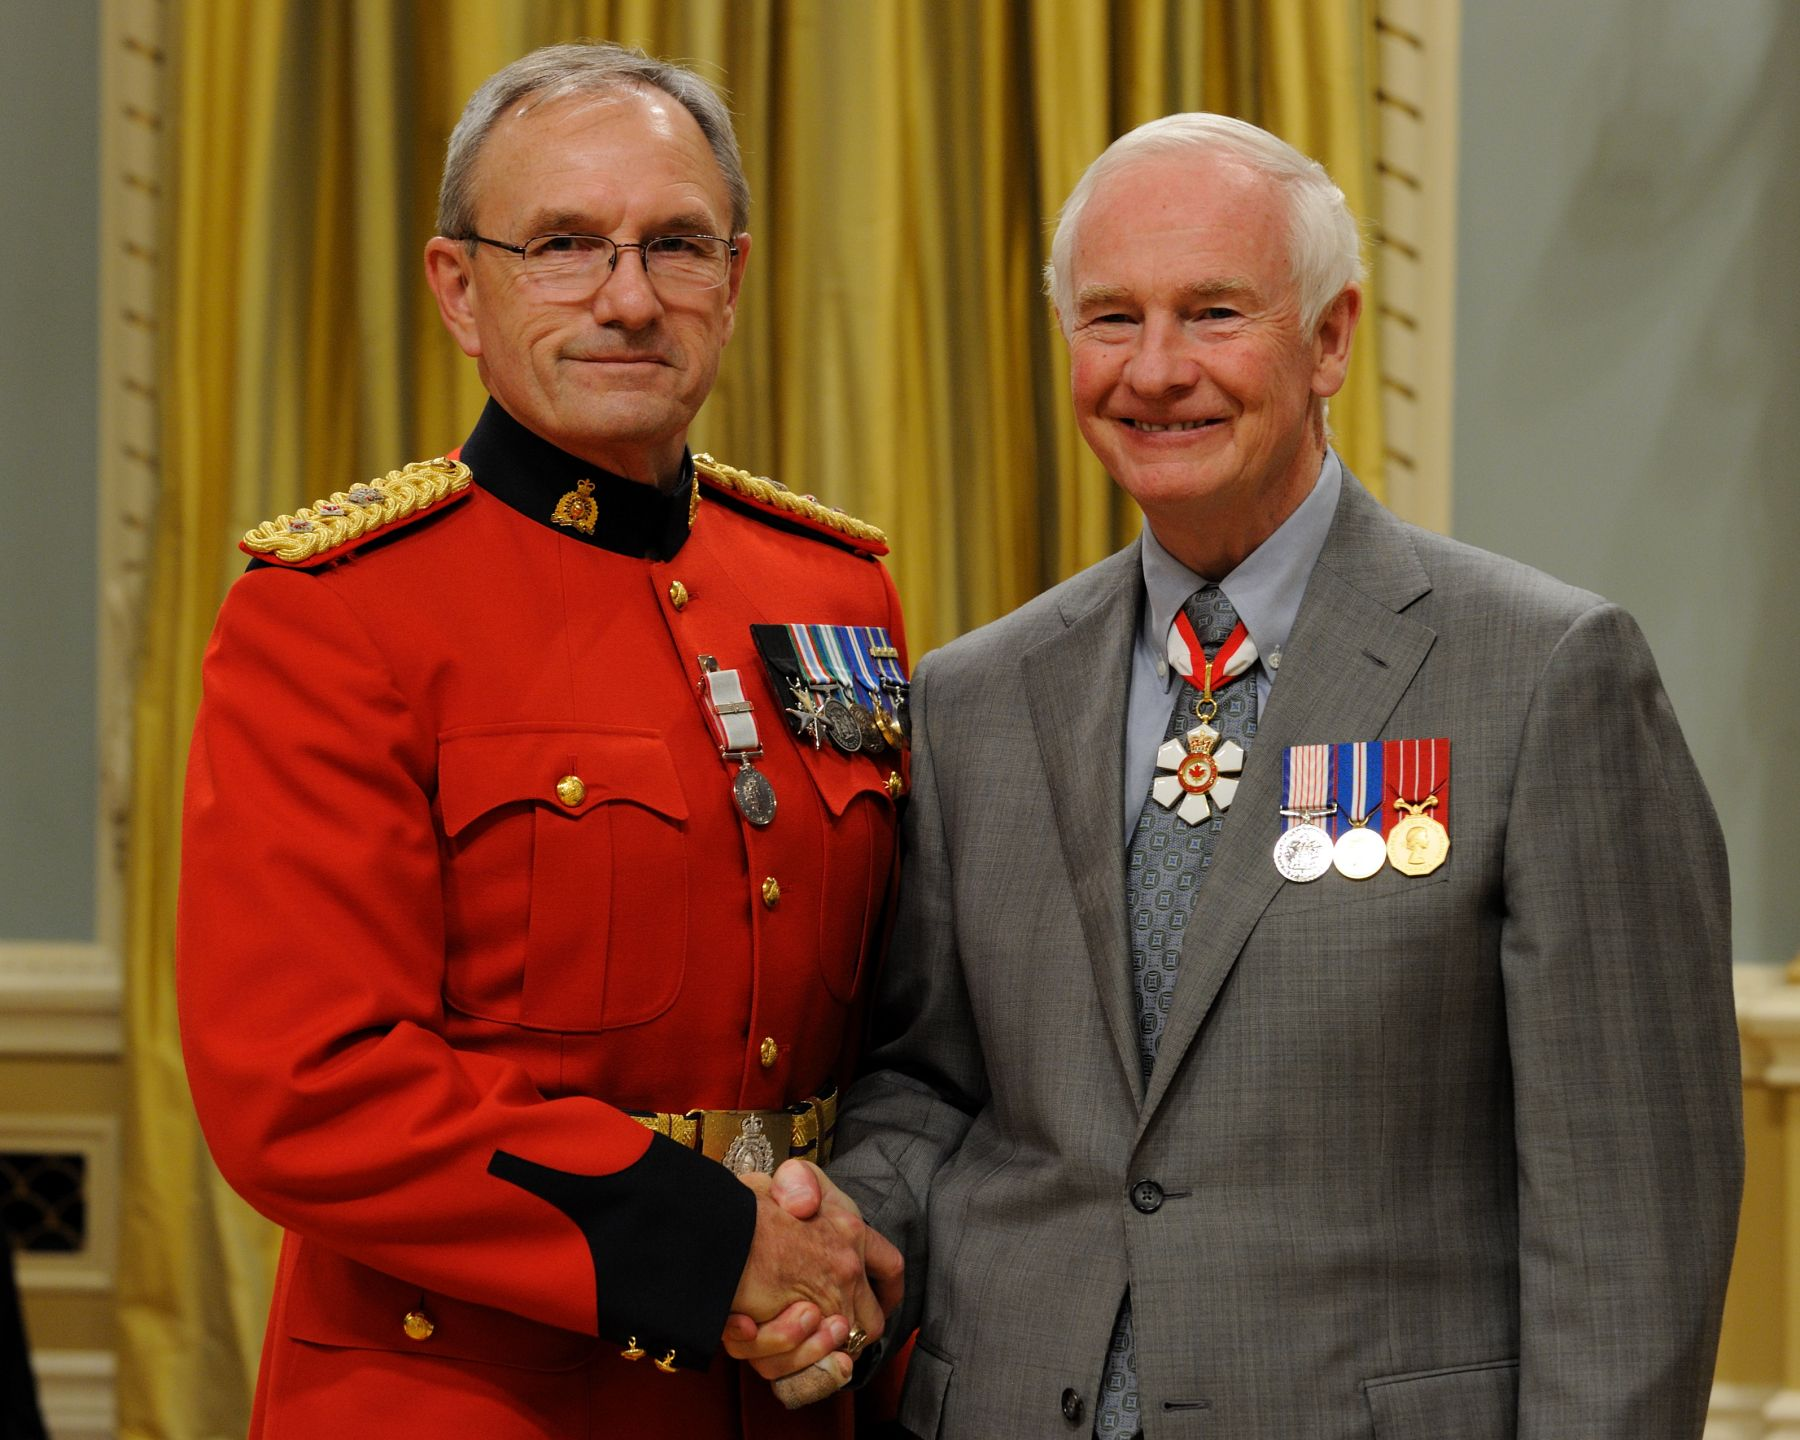 RCMP Superintendent David Charles Beer received the Operational Service Medal with EXPEDITION ribbon.